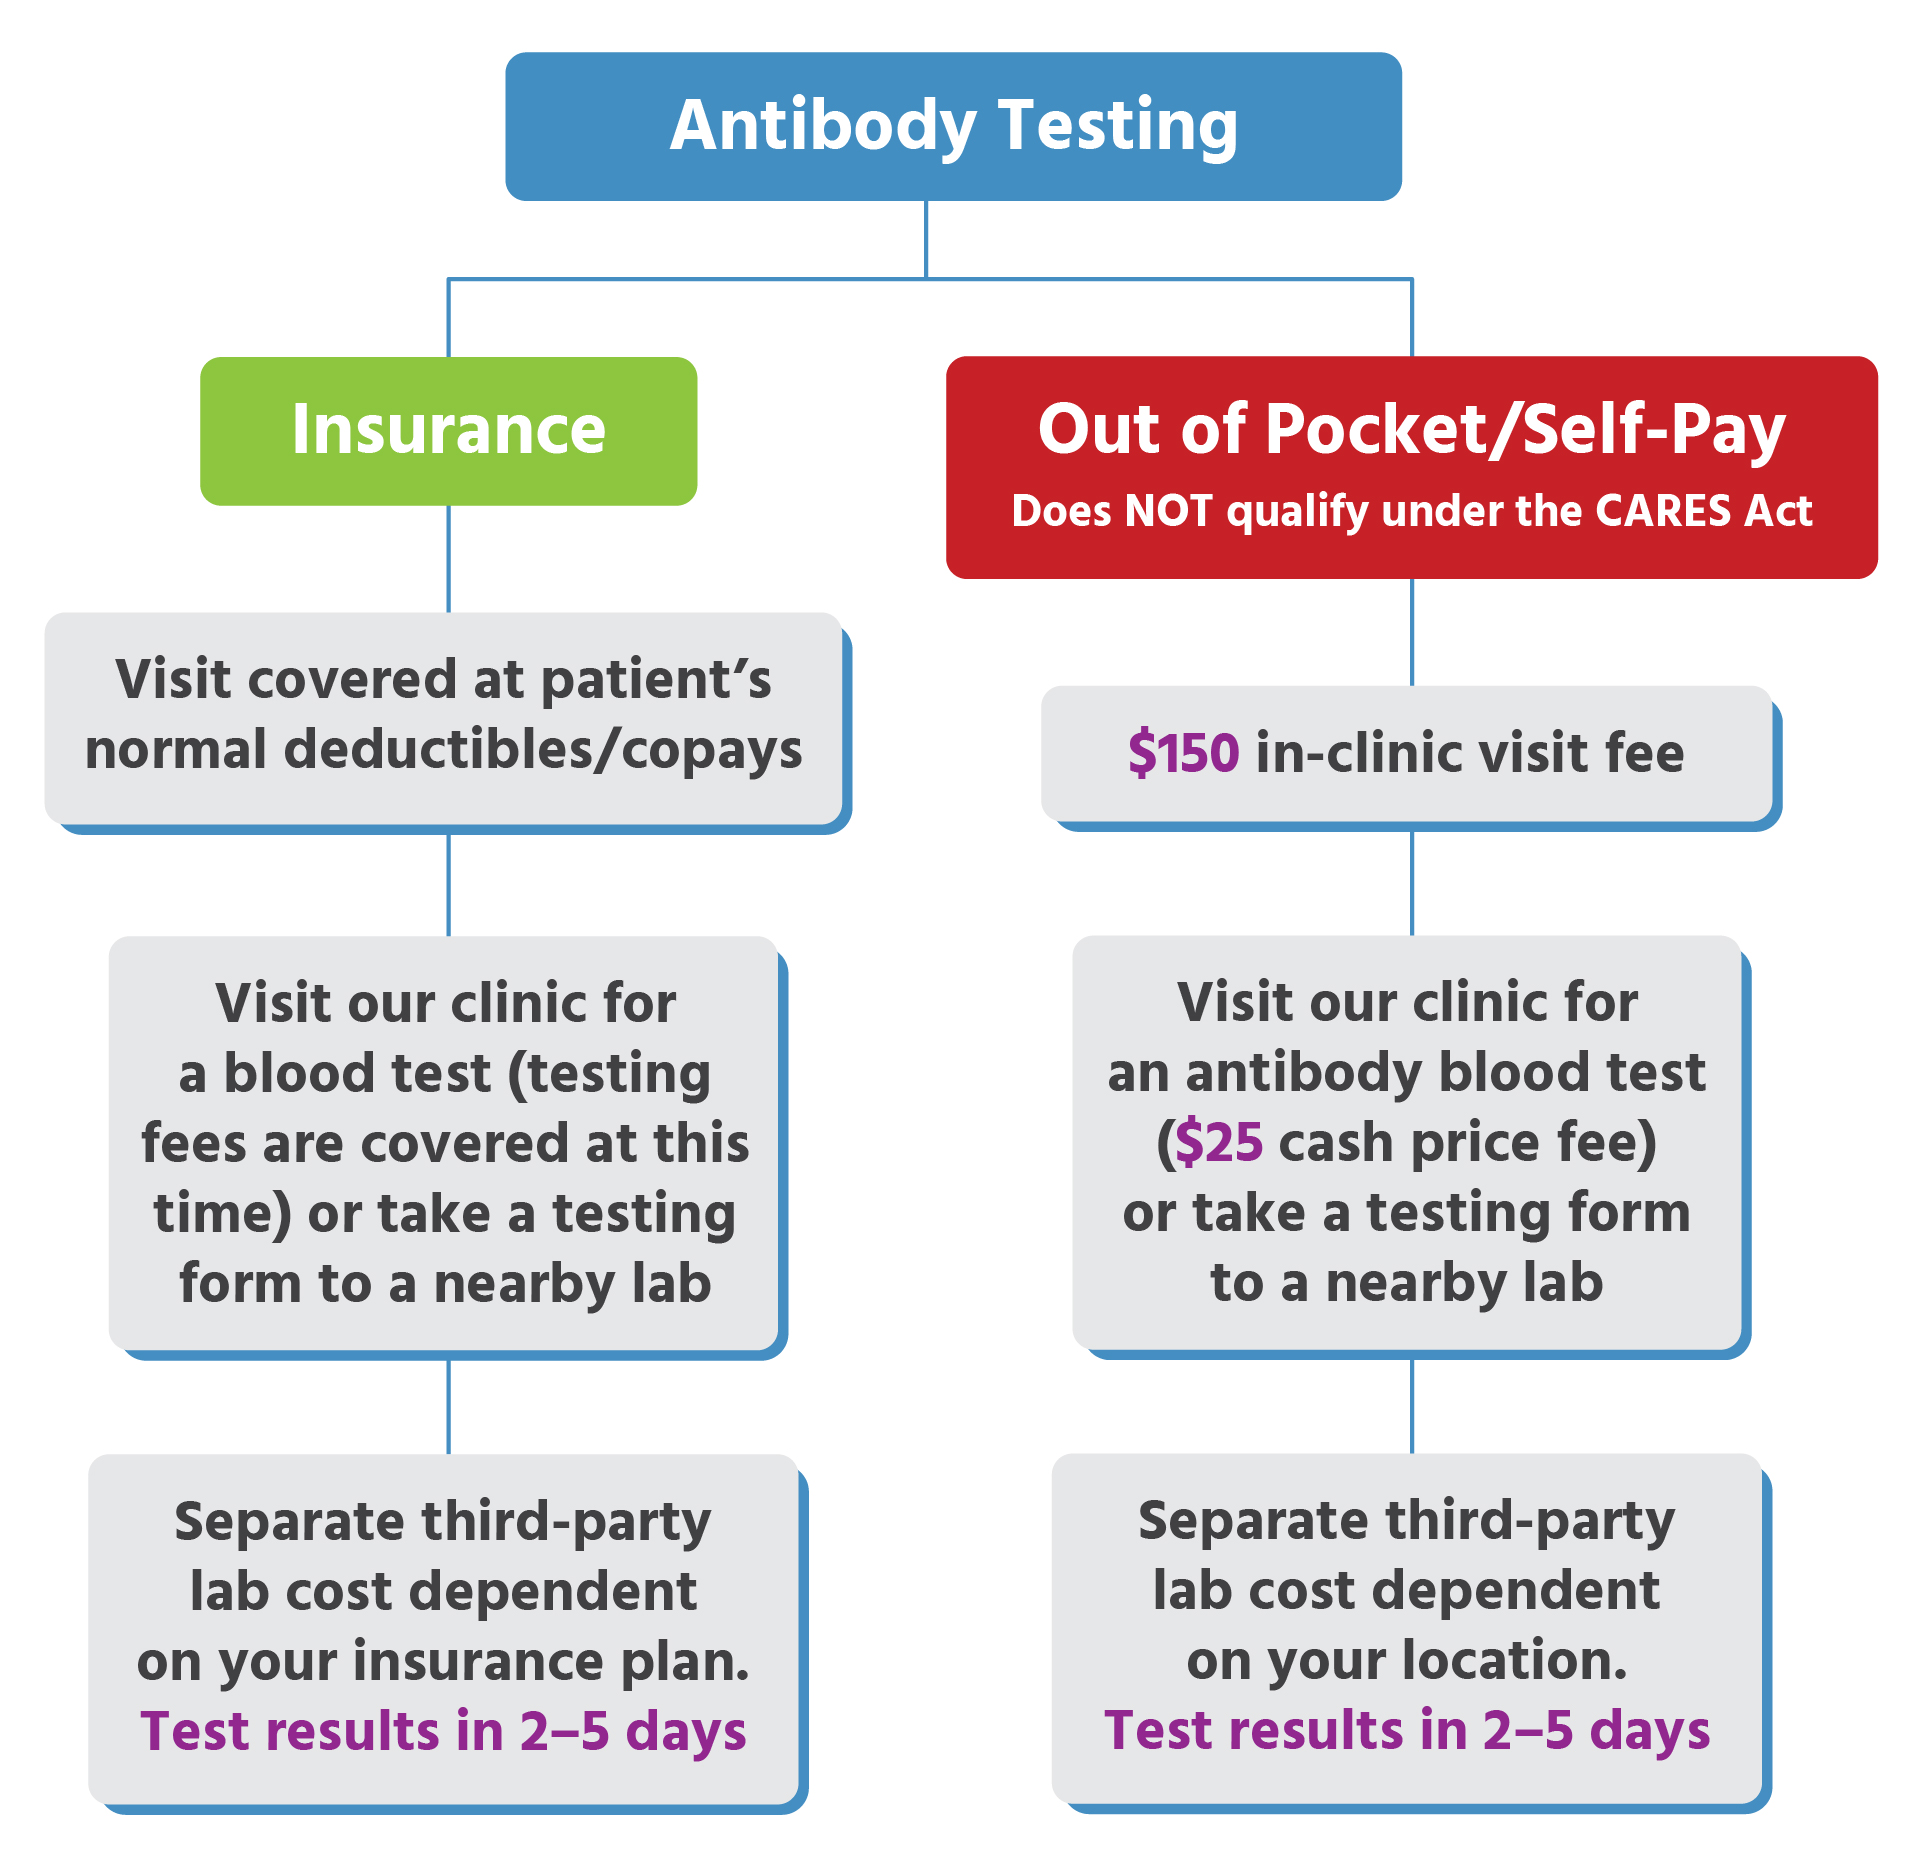 Urgent Care for Kids - Antibody Testing & Locations